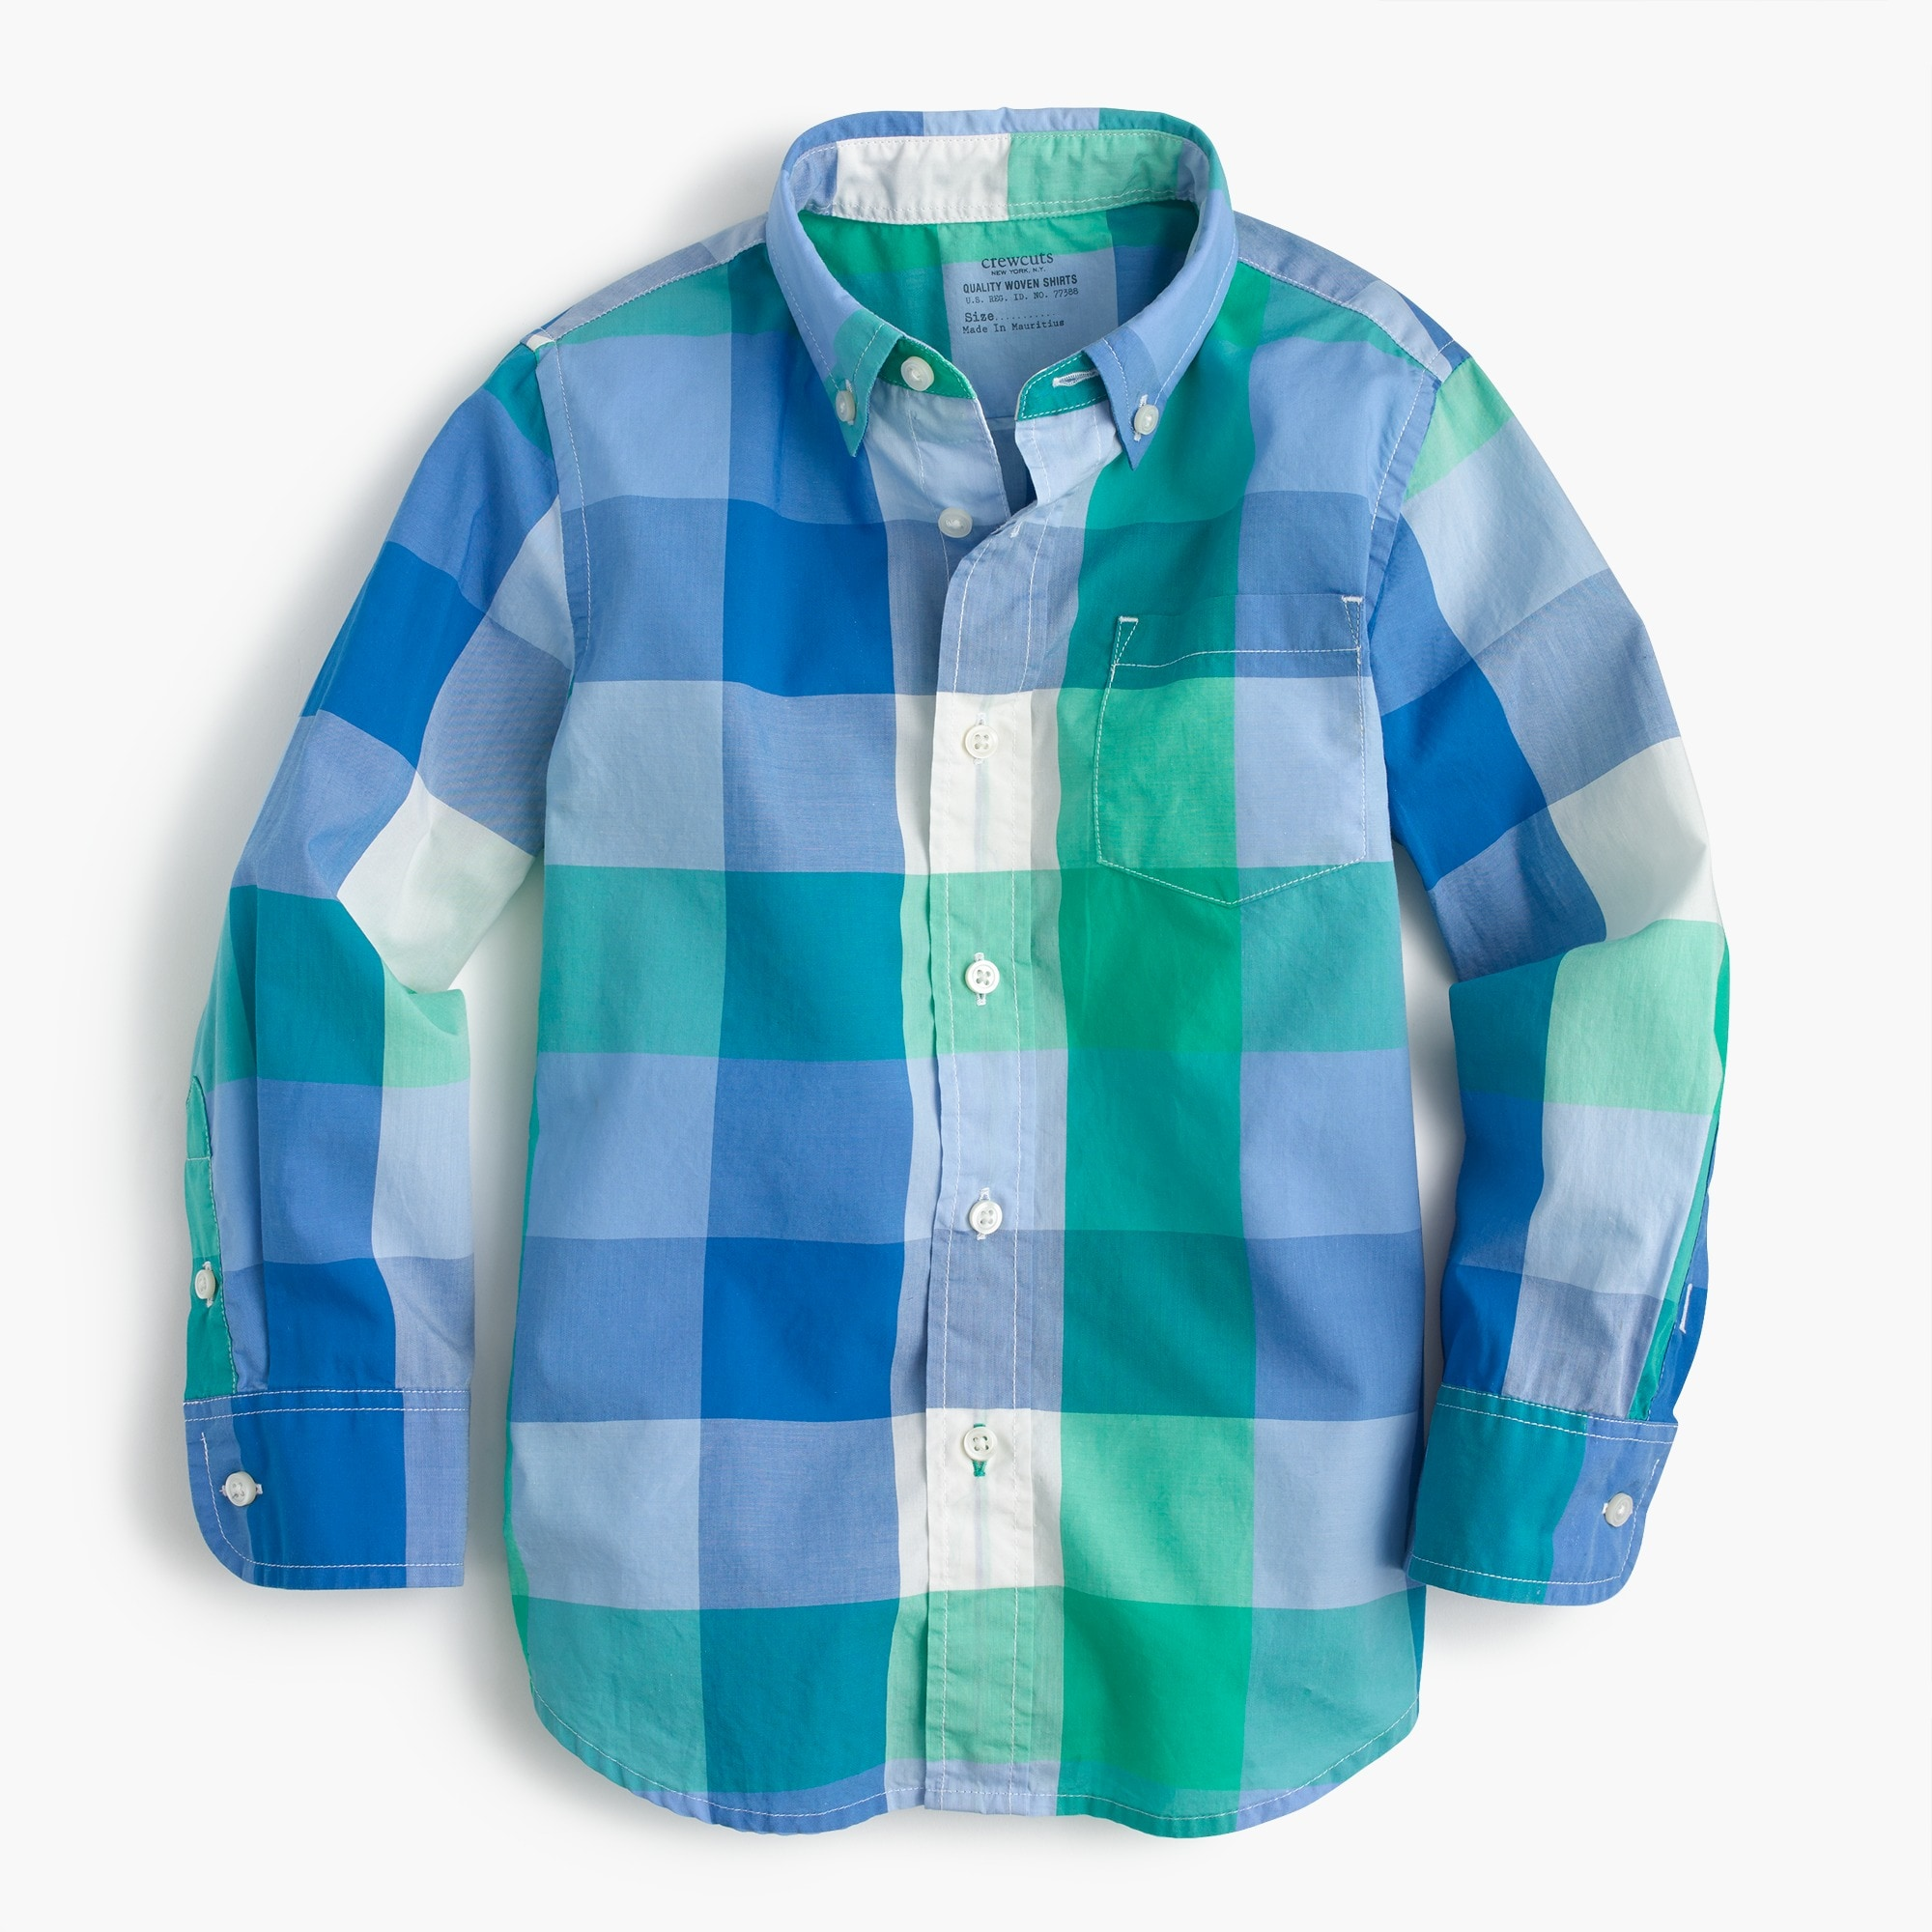 Kids' Secret Wash shirt in oversized gingham